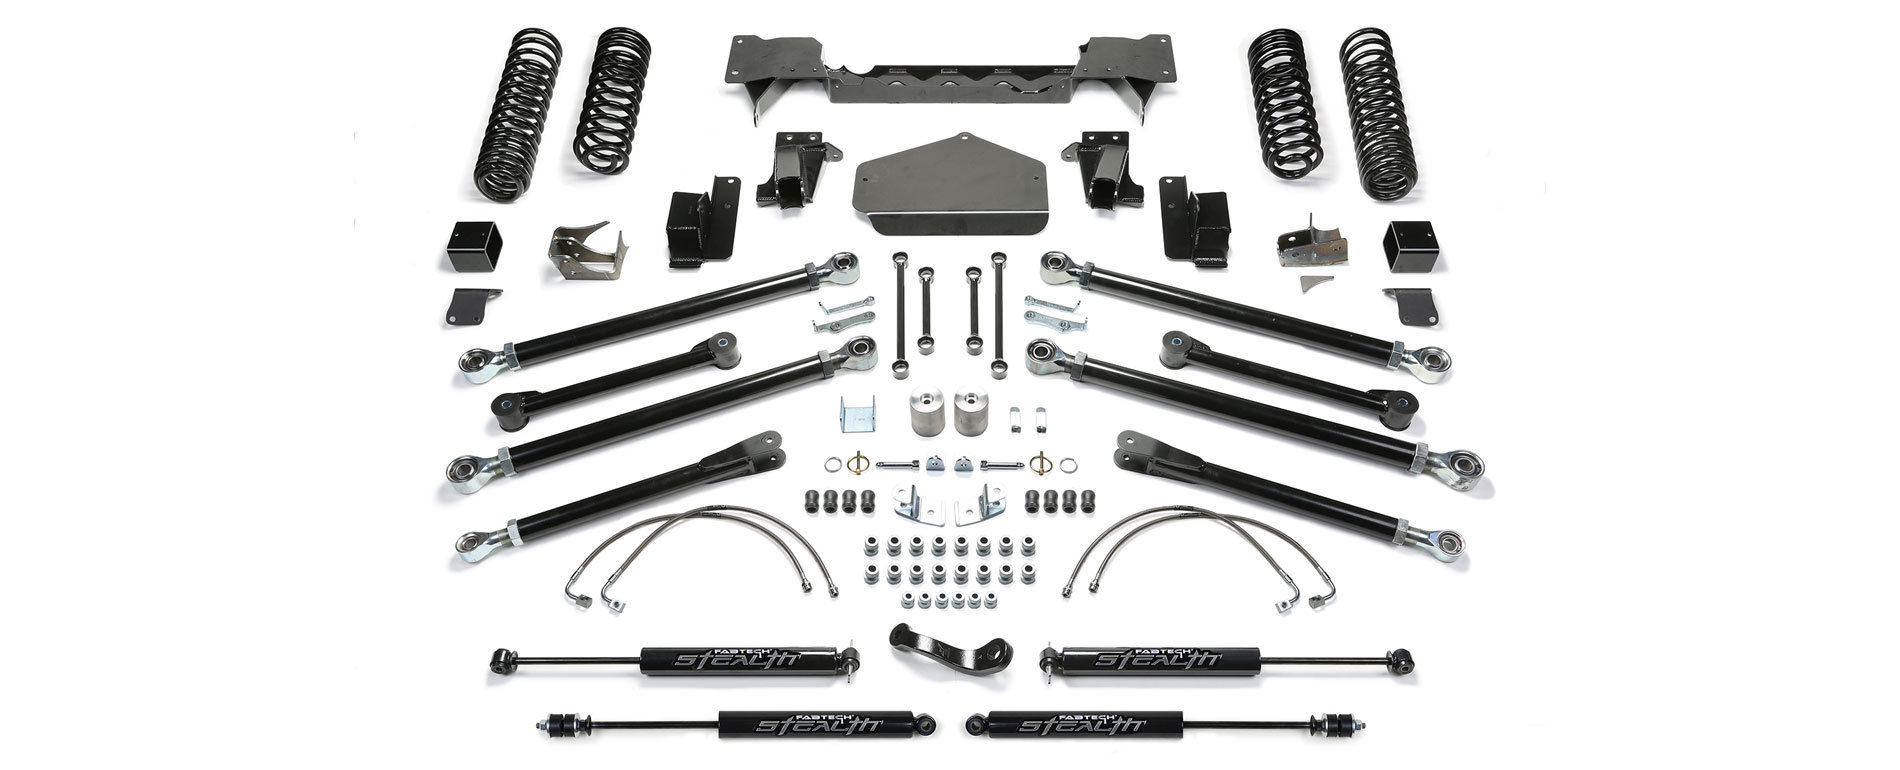 Fabtech 3in Crawler Long Travel Lift Kits for 07-18 Jeep